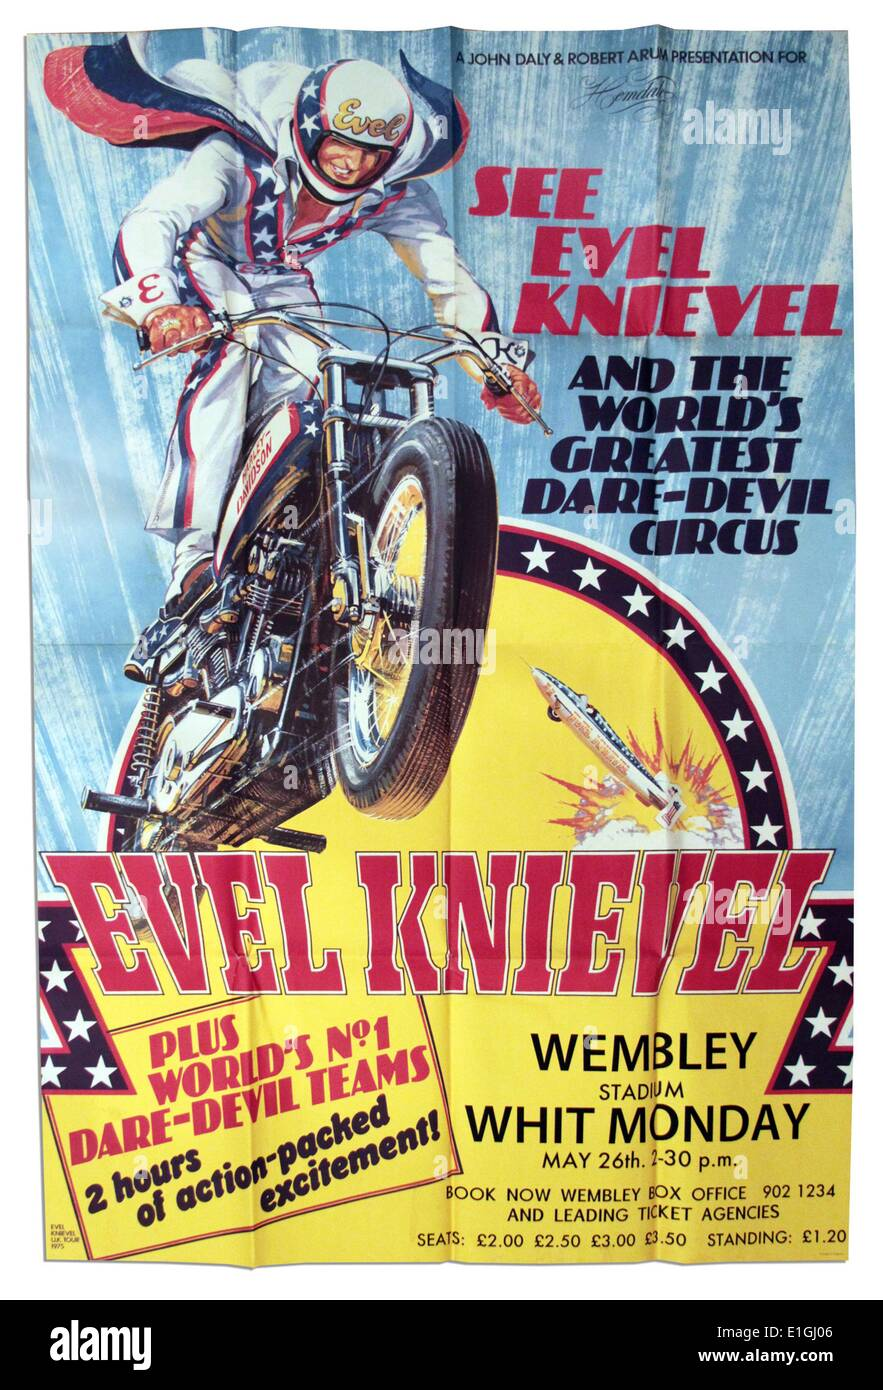 'Evel Knievel' a 1971 daredevil motion picture starring George Hamilton. - Stock Image